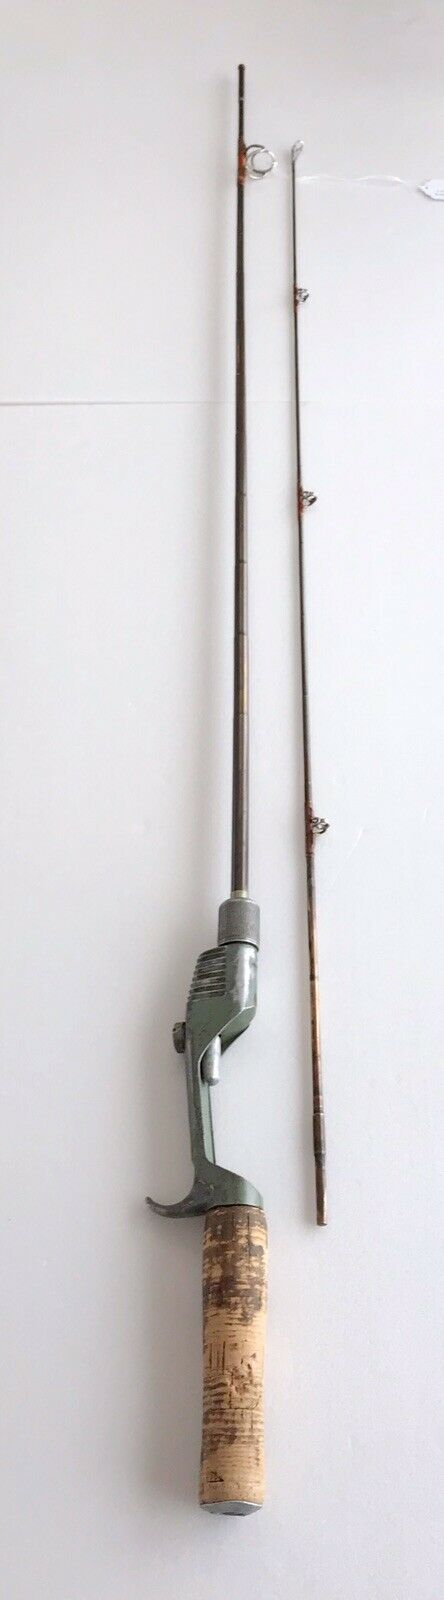 EXTREMELY RARE COLLECTOR ANTIQUE VINTAGE PENROD METAL FISHING ROD 74